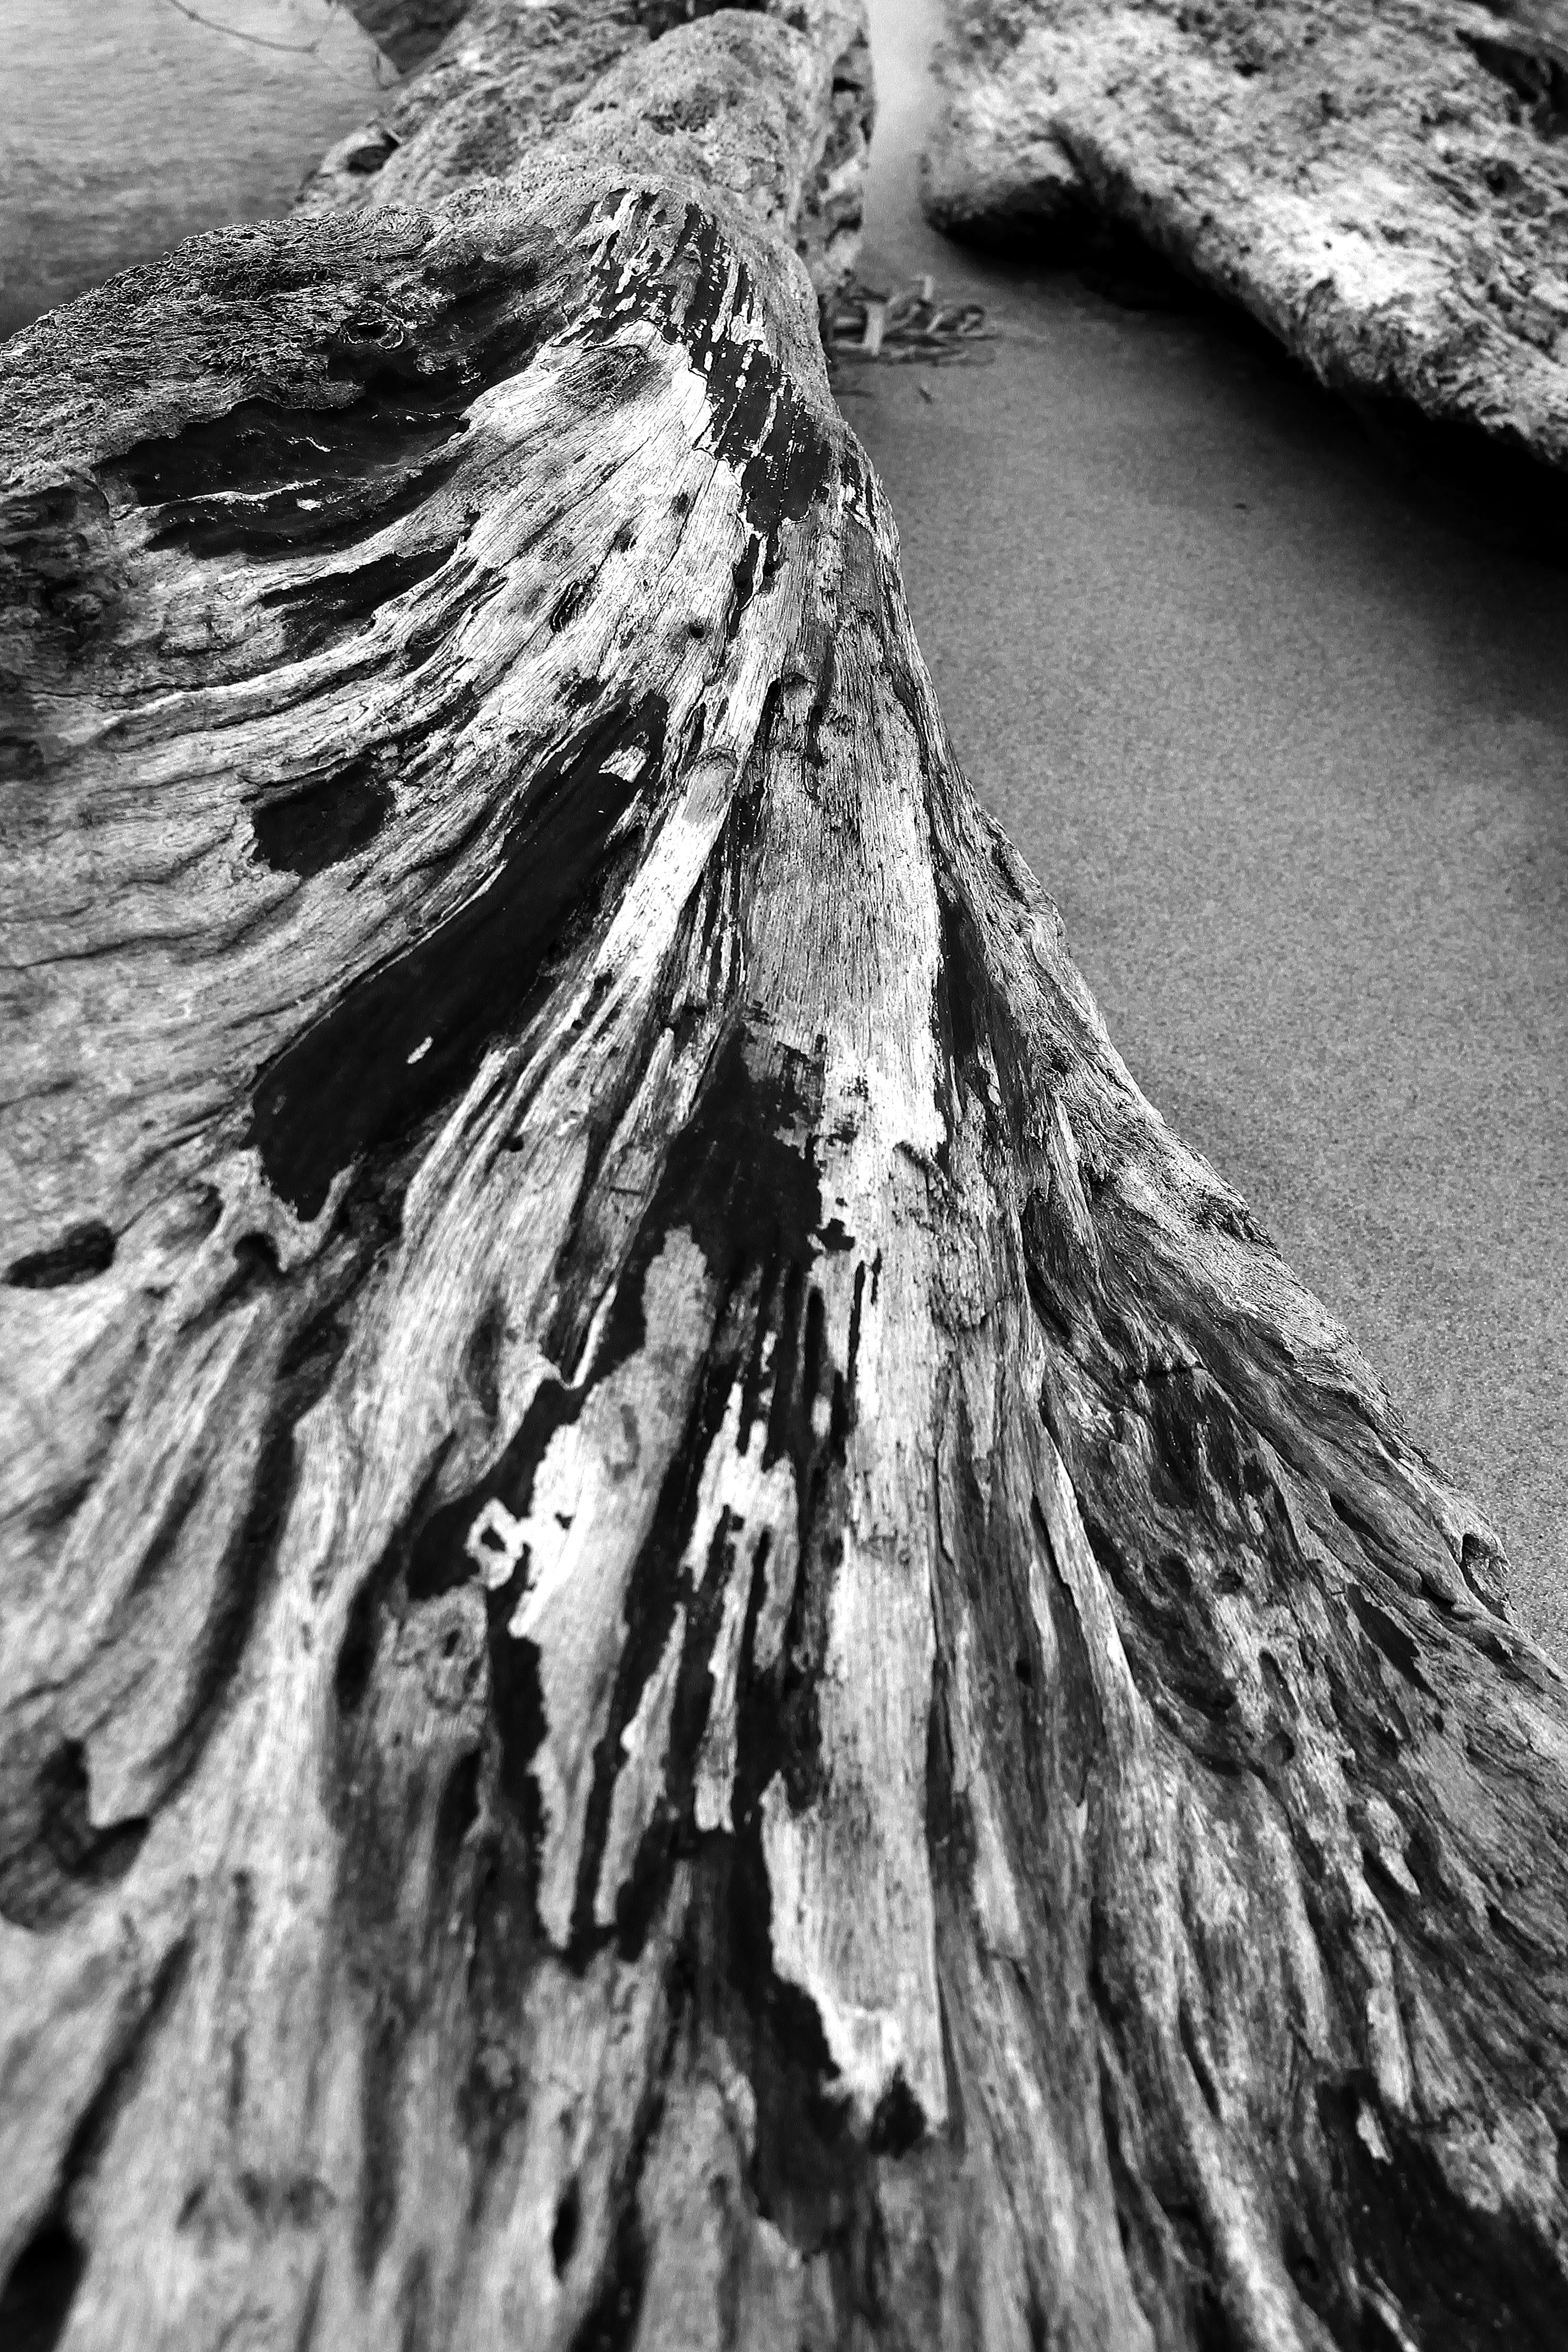 Old Wood, Old, Rot, Texture, Wood, HQ Photo